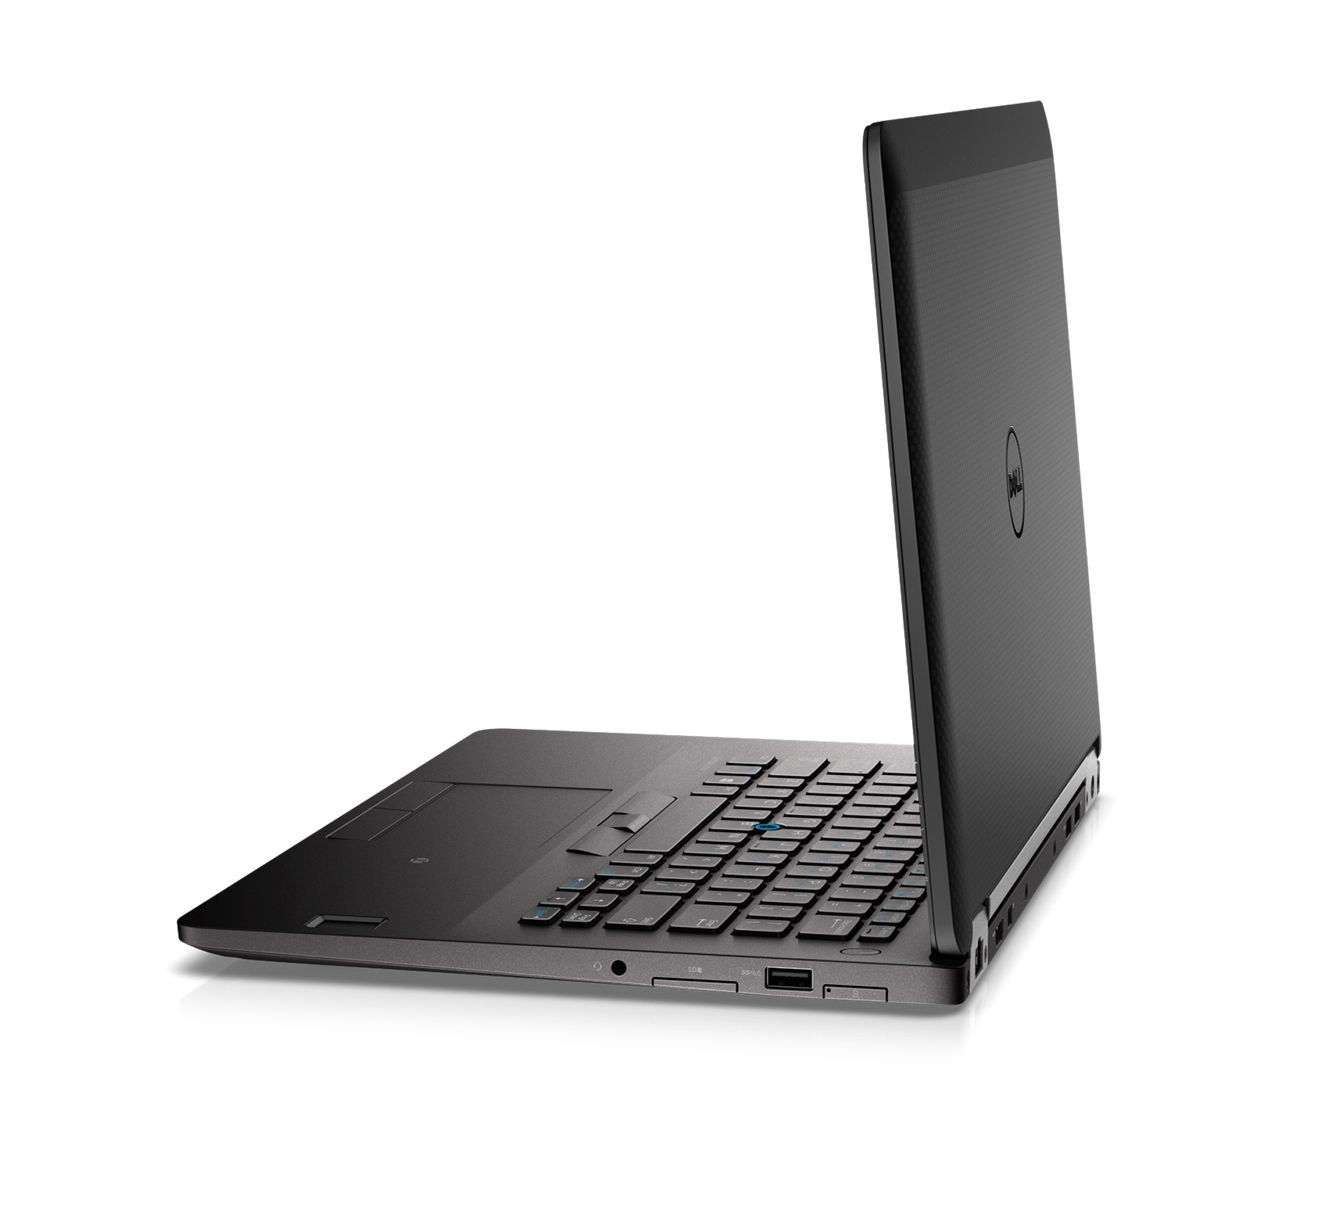 DELL Latitude E7470 NFMXG Core i7-6600U 8GB 256GB SSD 14IN BT CAM Win 10  Pro Black